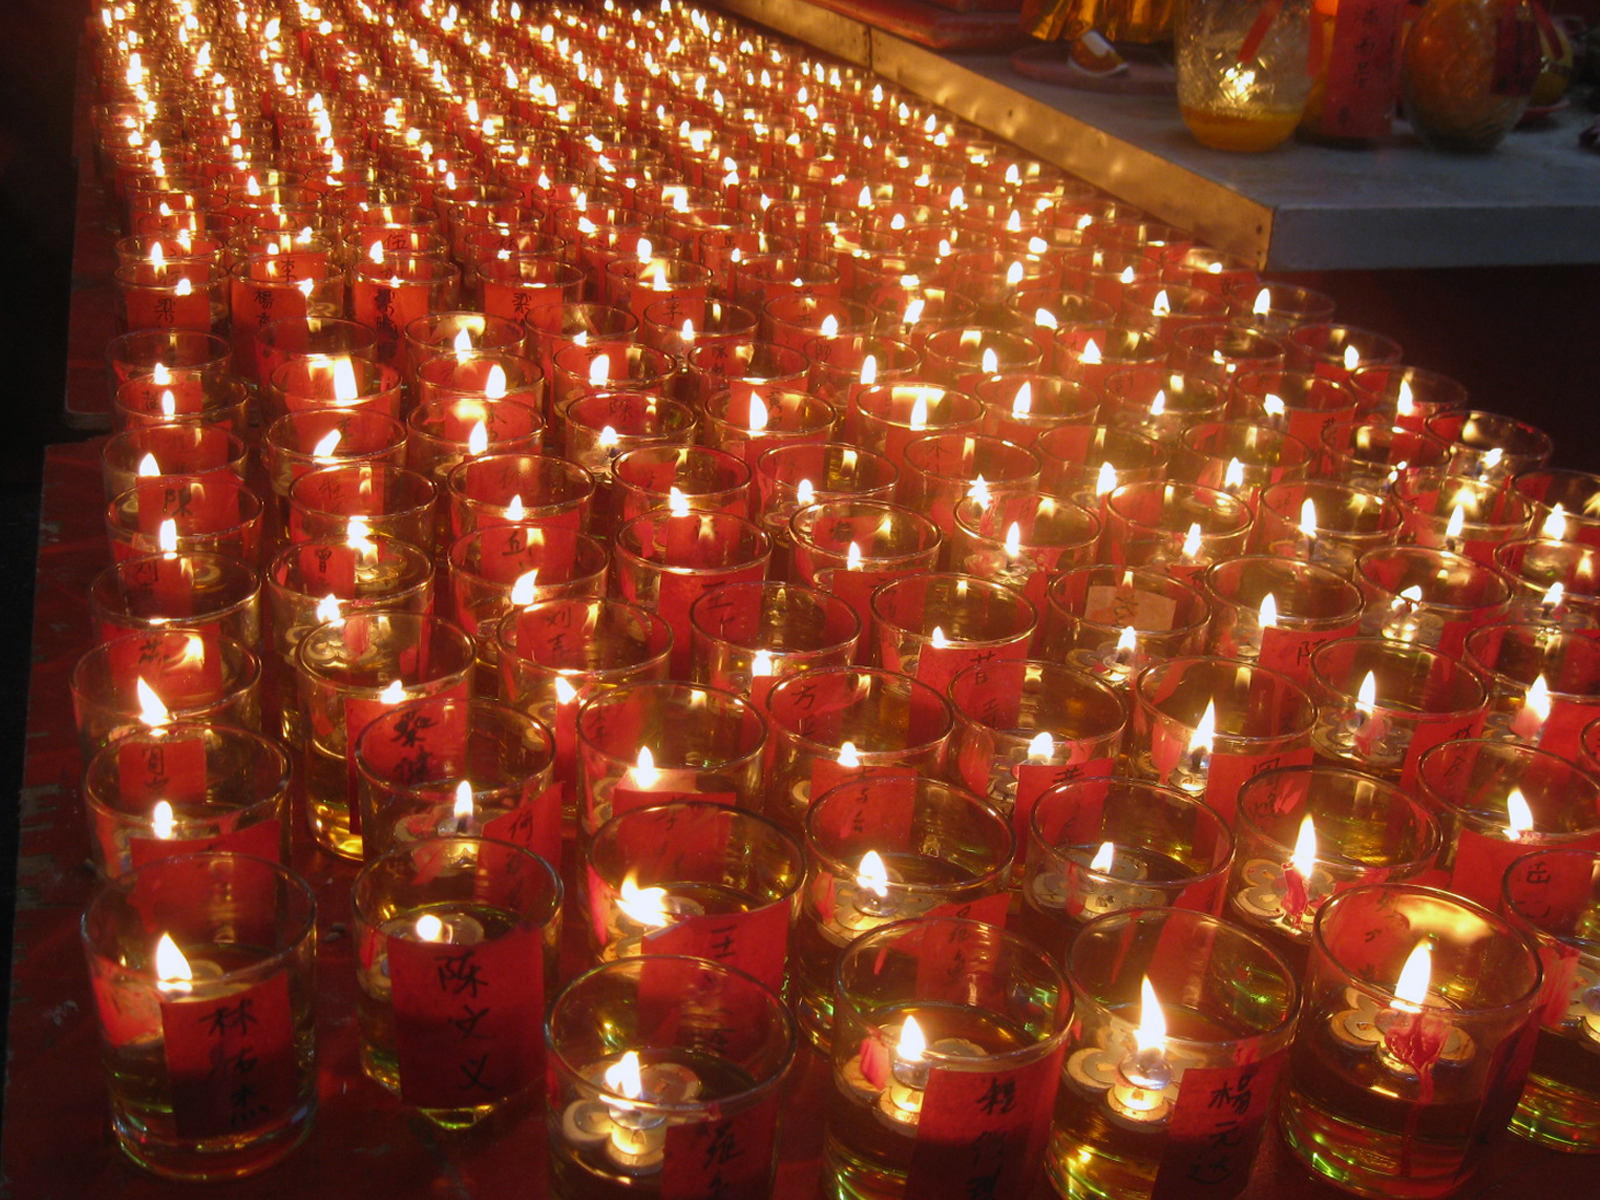 Glass Candles, Candles, Chinese, Evening, Festival, HQ Photo